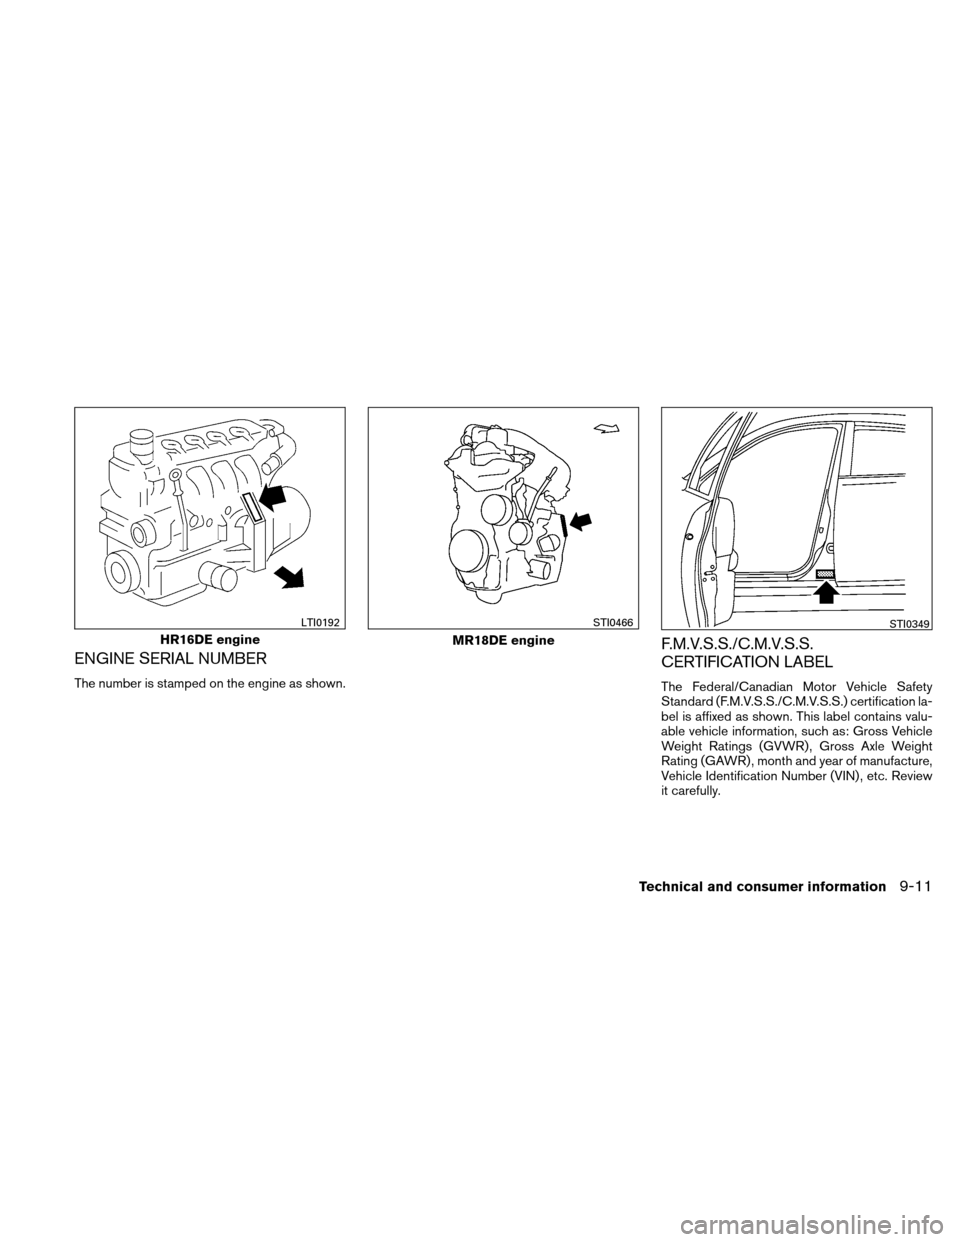 NISSAN VERSA HATCHBACK 2011 1.G Owners Manual, Page 330